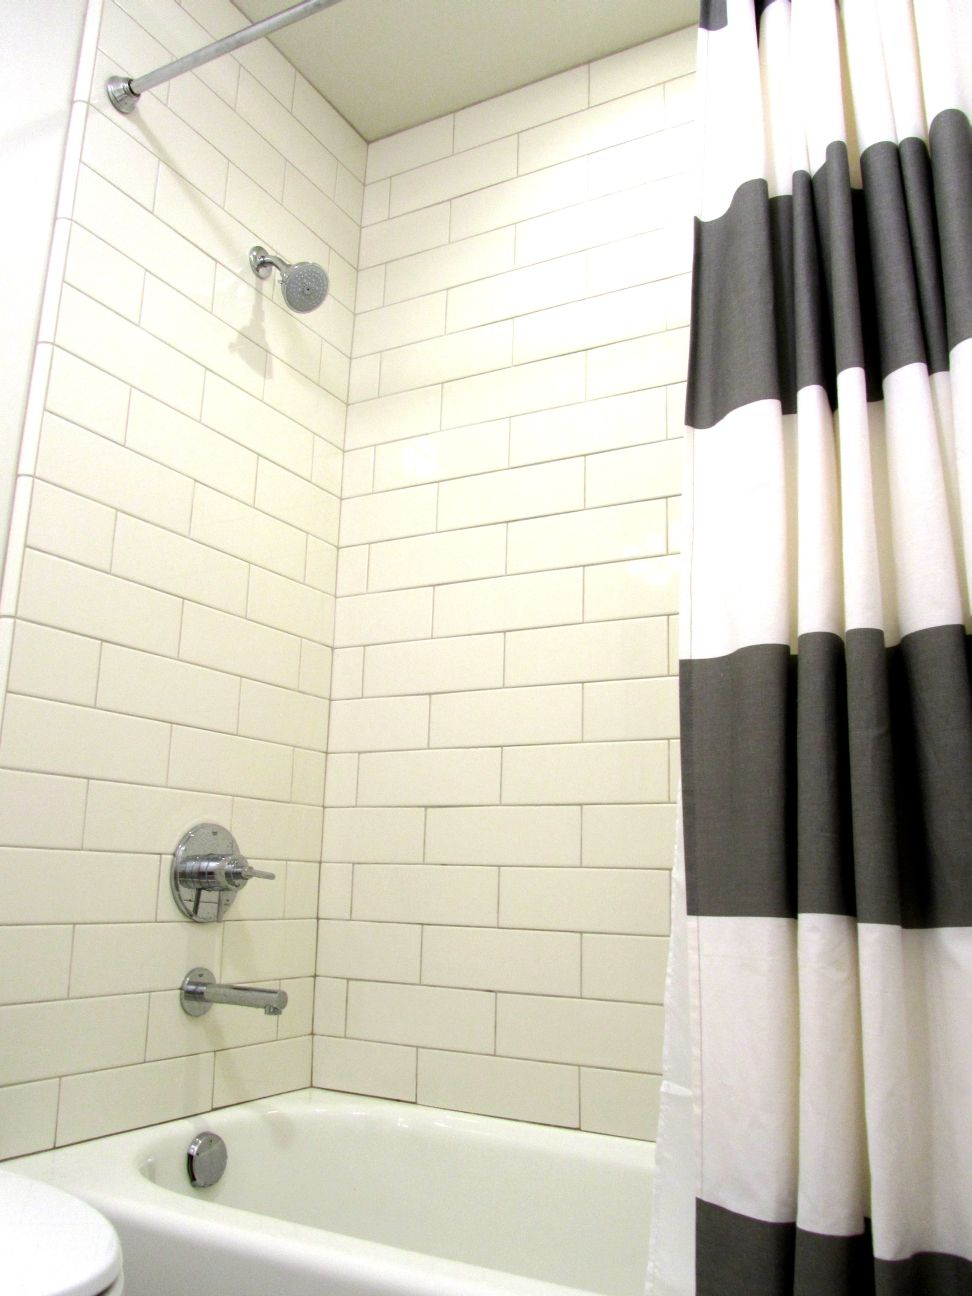 Shower Curtain Rod West Elm Target Shower Tile Grout Subway Daltile 4x12 Biscuit Mapei 01 White Subway Tile Bathroom Daltile Bathroom Remodel Master